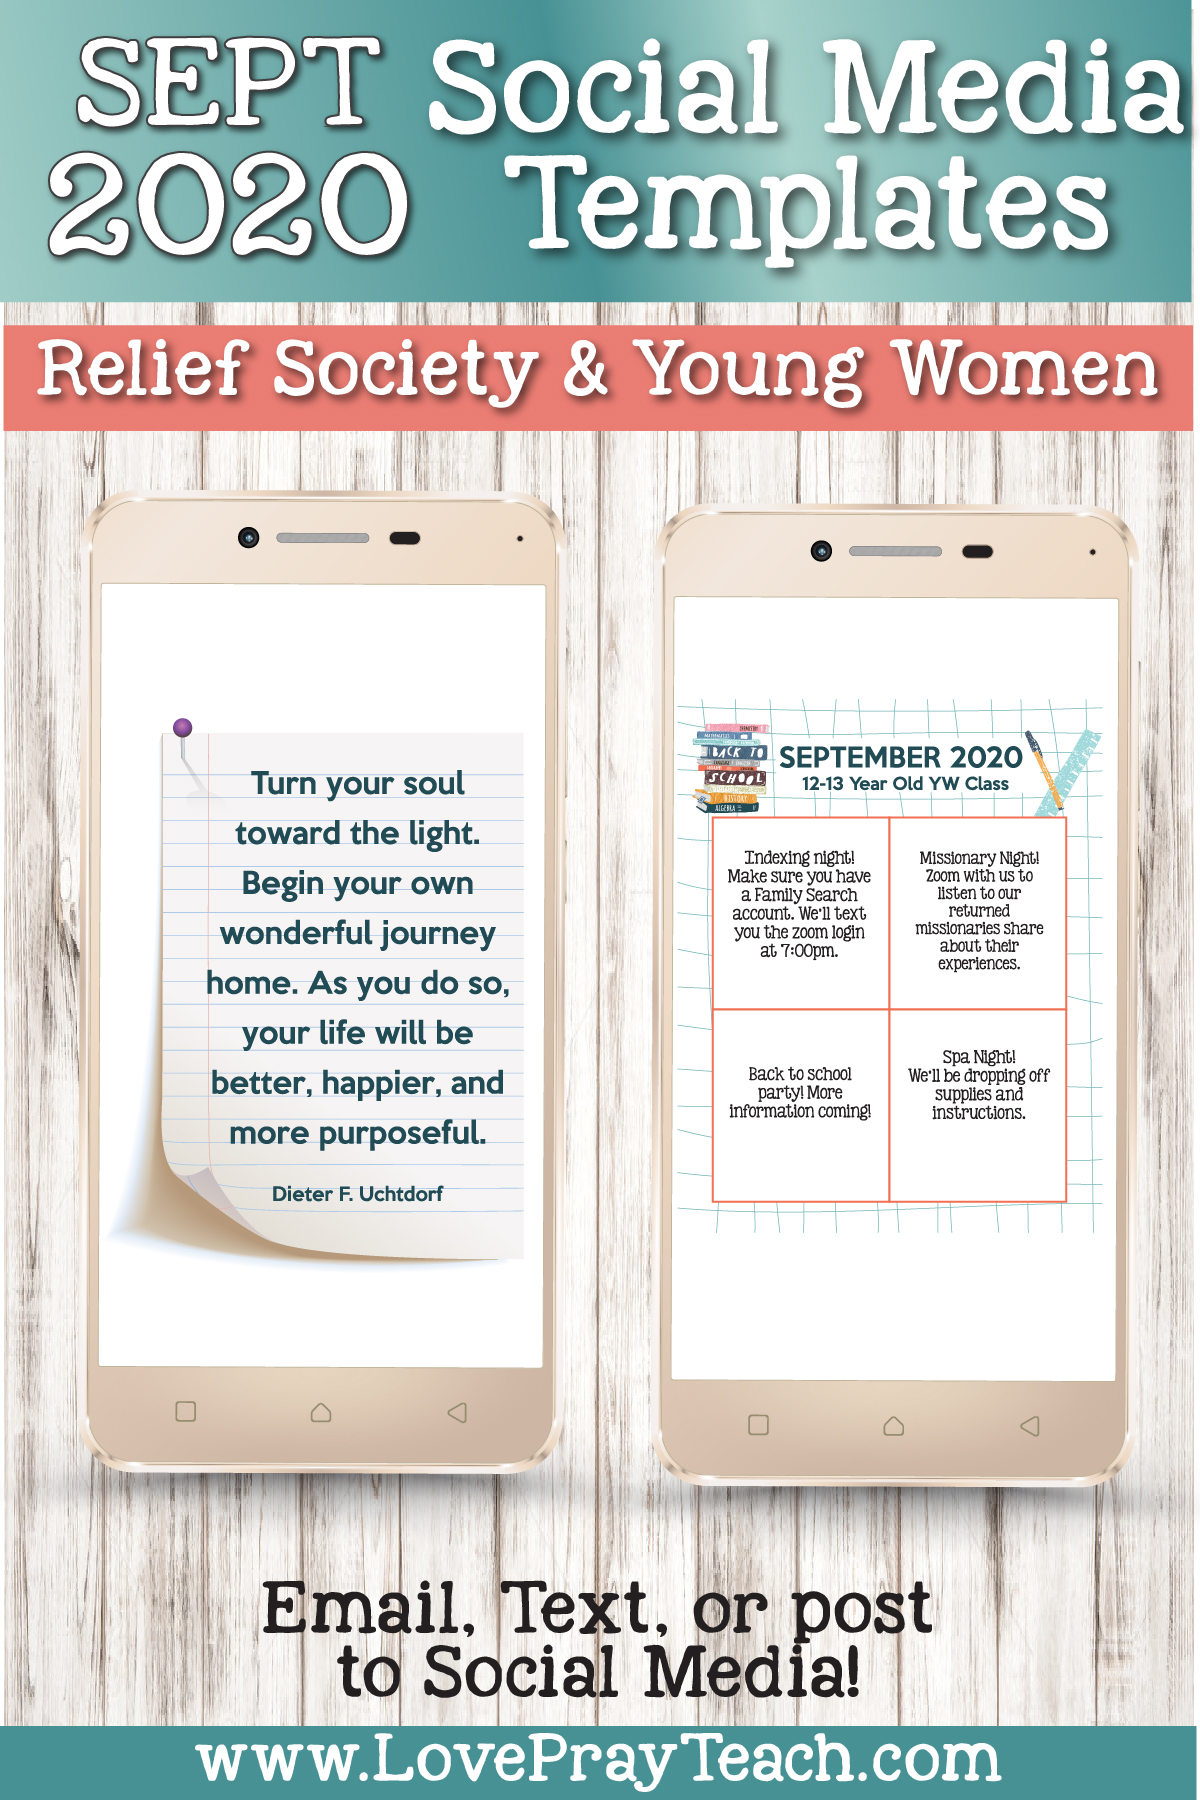 September 2020 Newsletter Bundle for Relief Society and Young Women www.LovePrayTeach.com